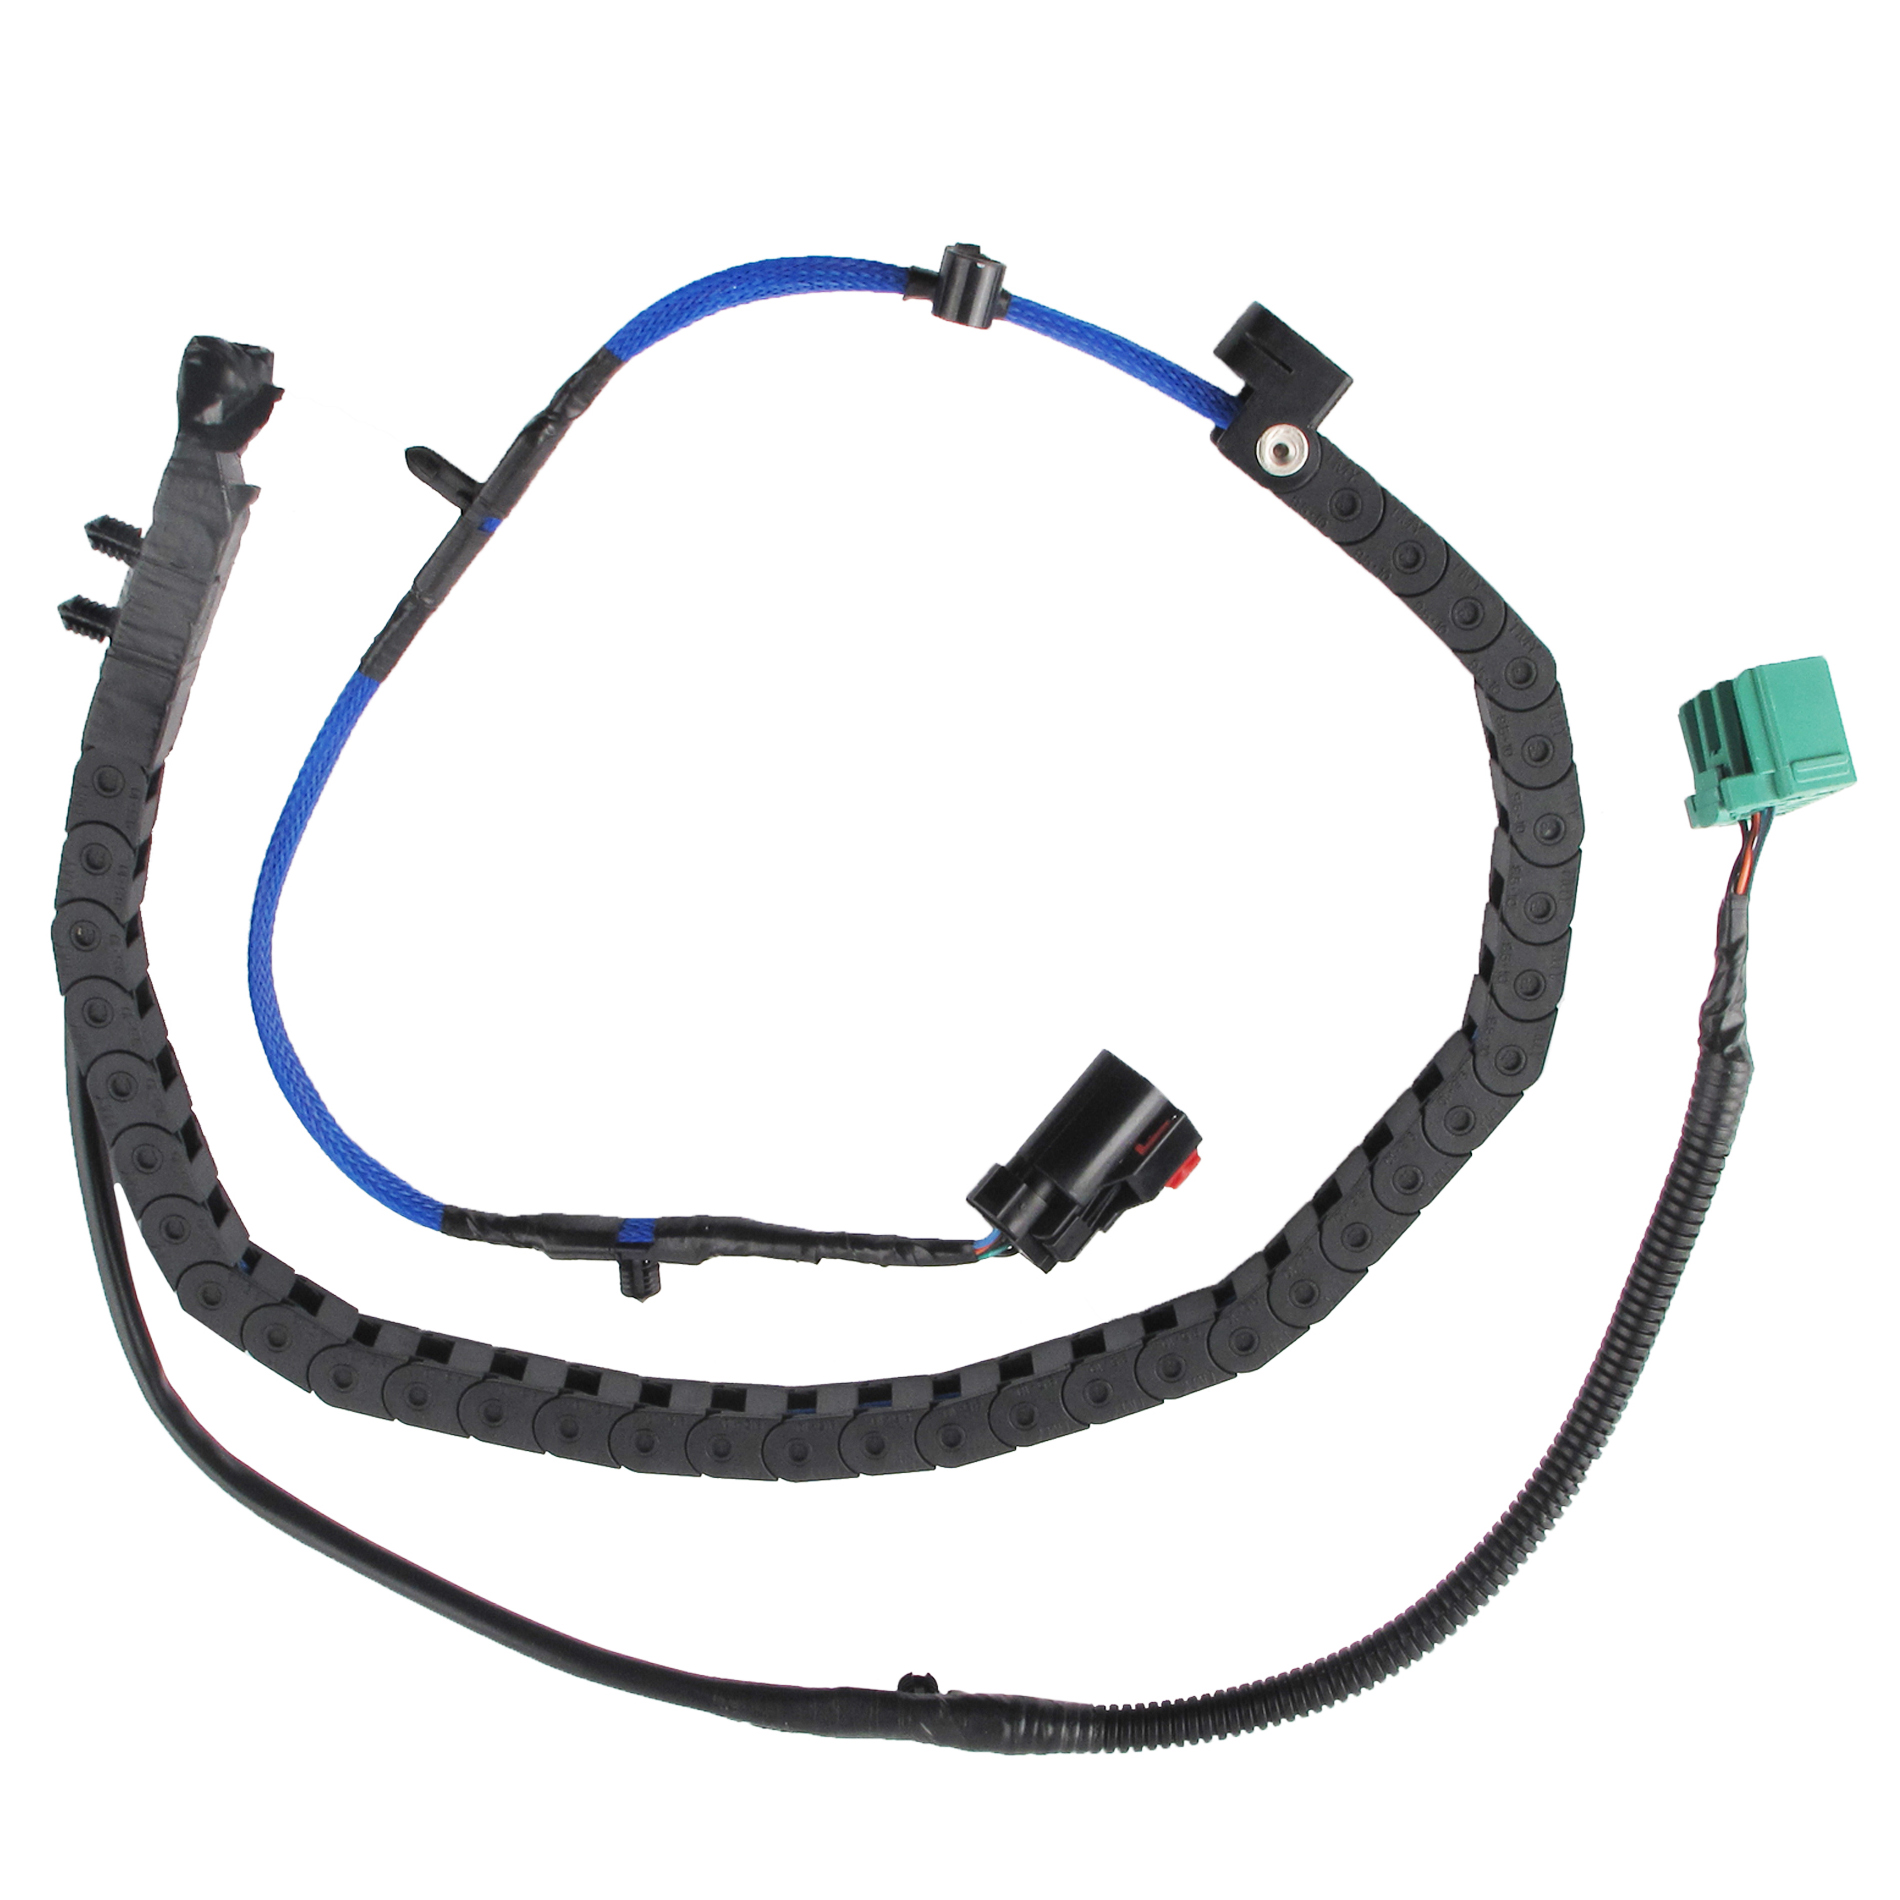 2007 Dodge Grand Caravan Power Sliding Door Wiring Harness from d3d71ba2asa5oz.cloudfront.net